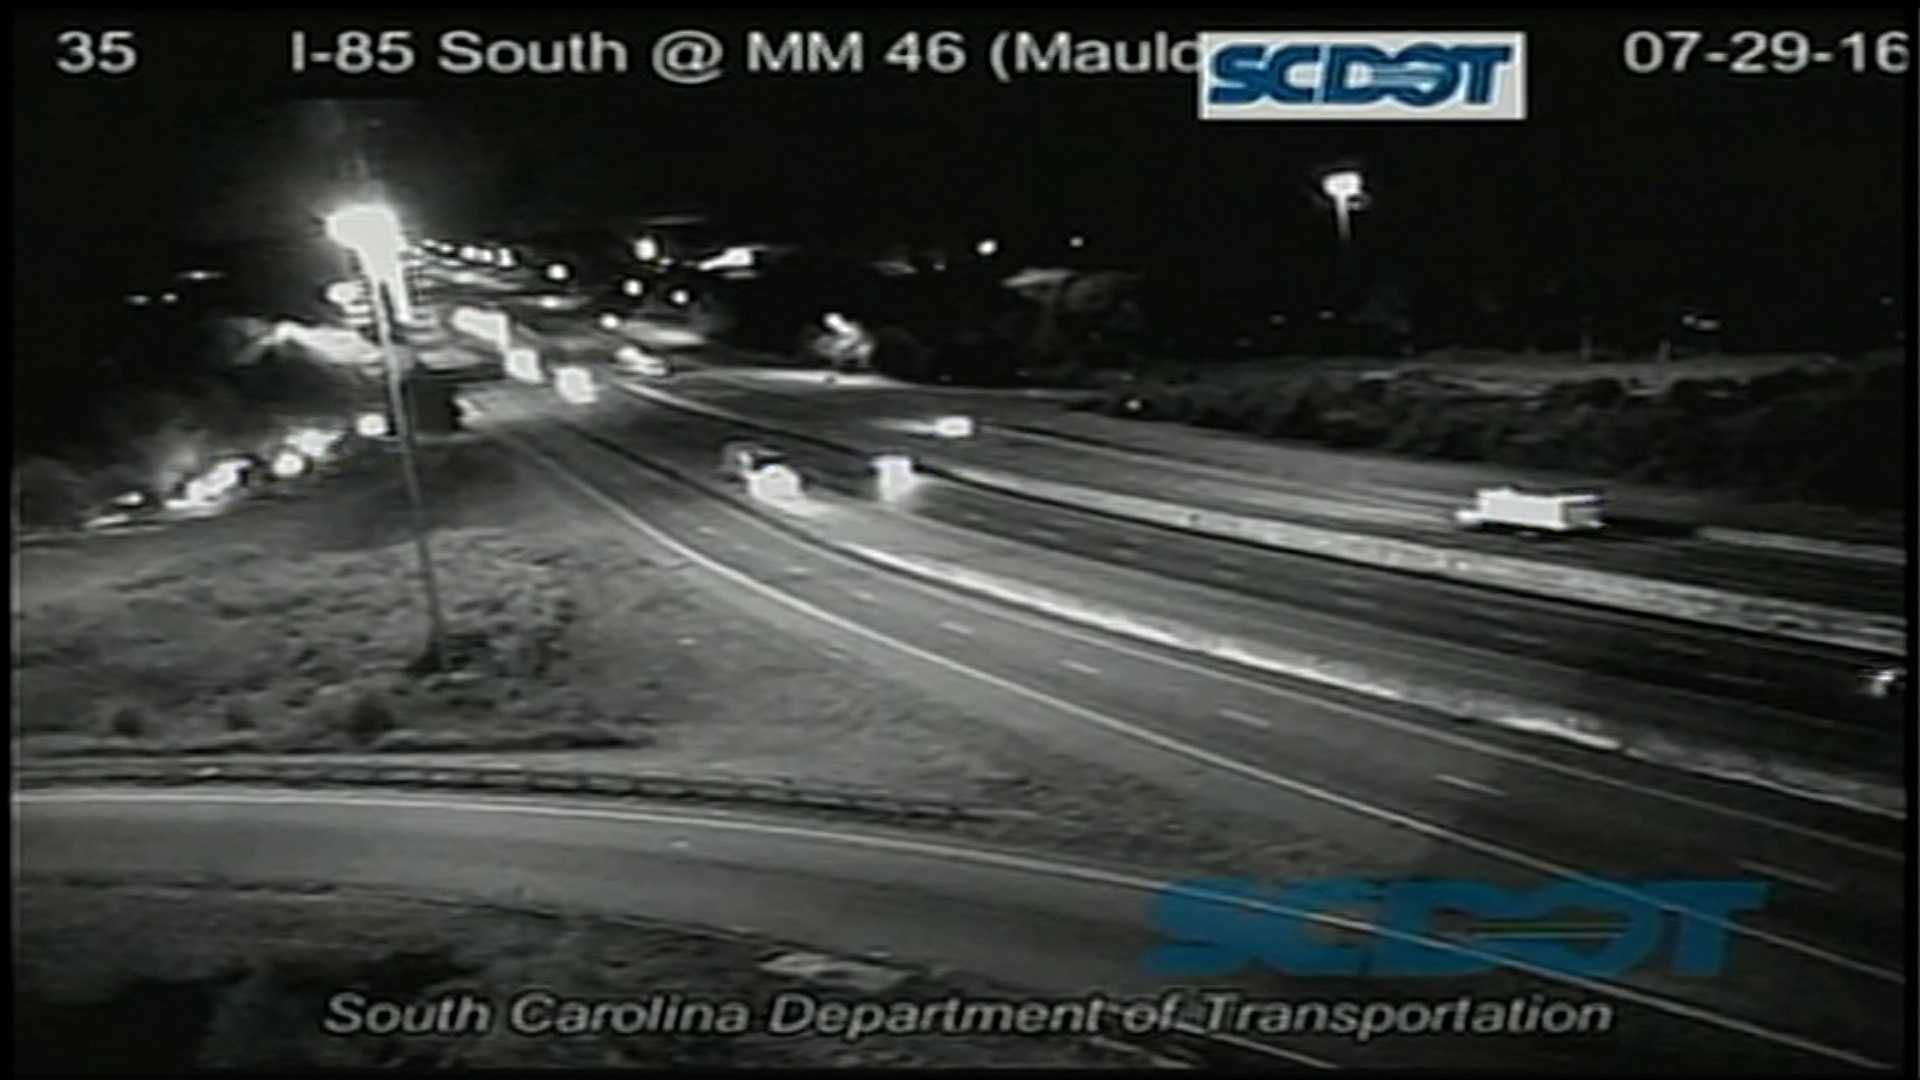 SUV runs off Interstate 85, man taken to hospital, troopers say